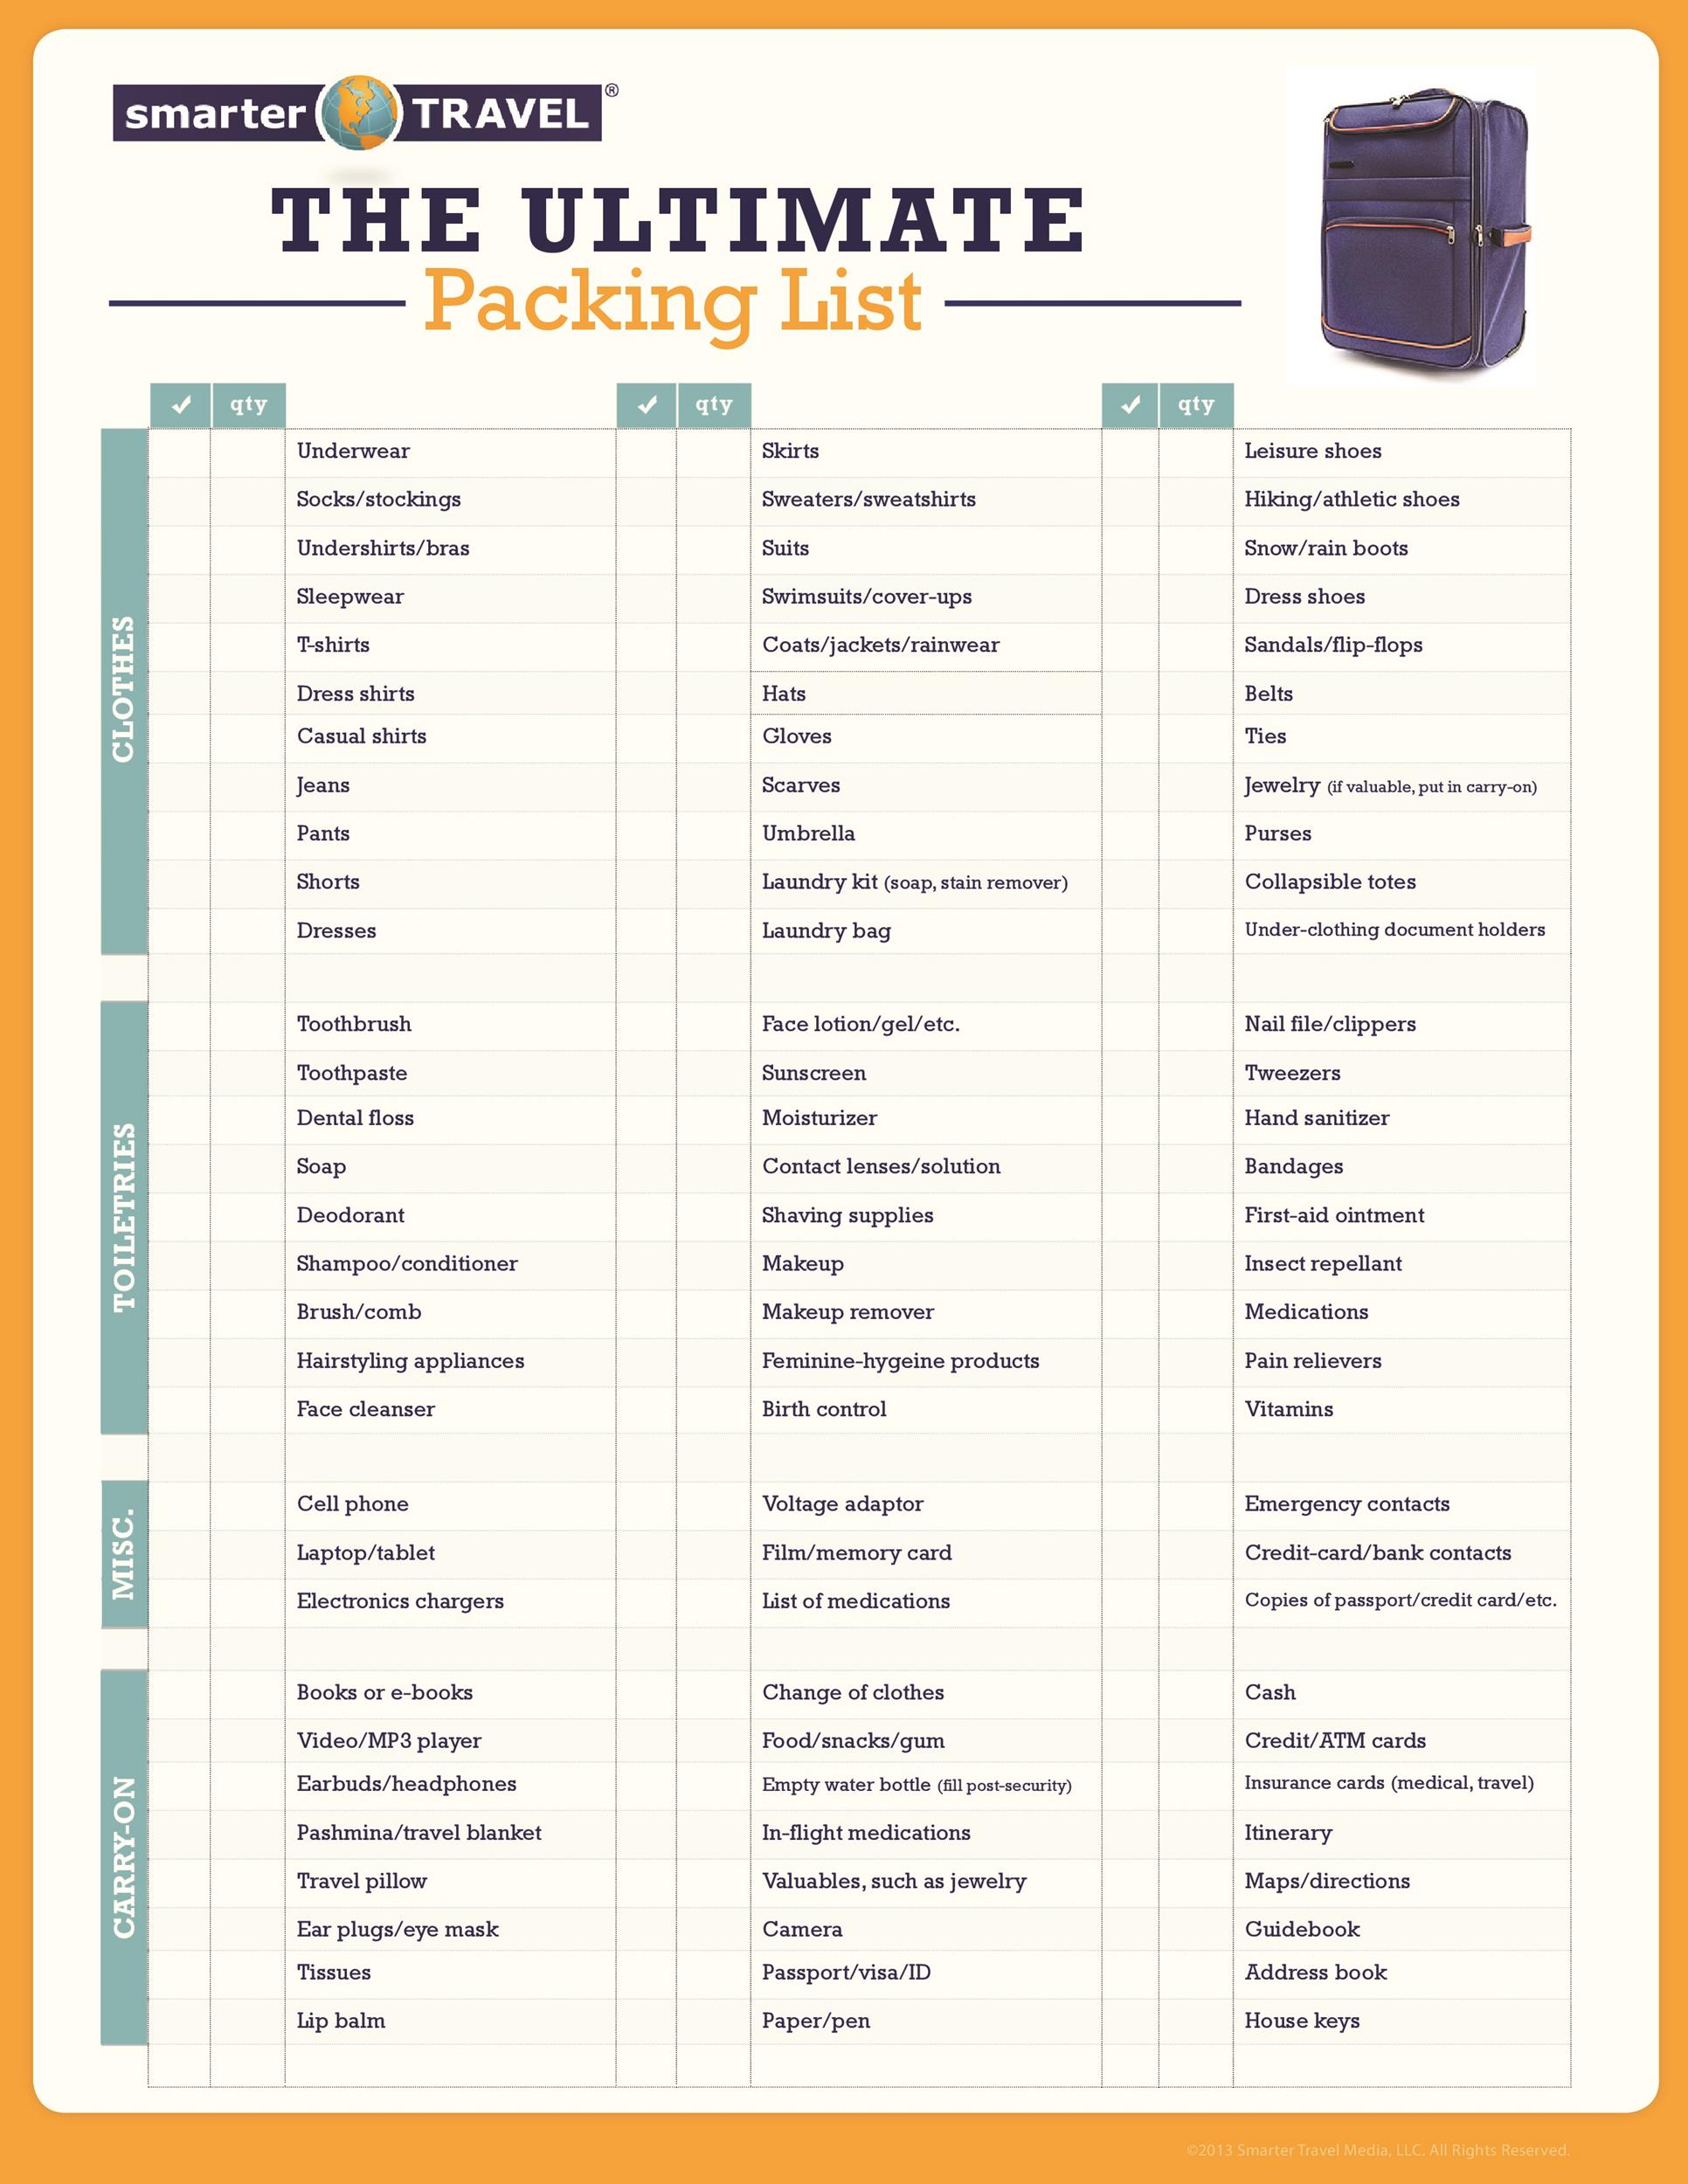 Packing list